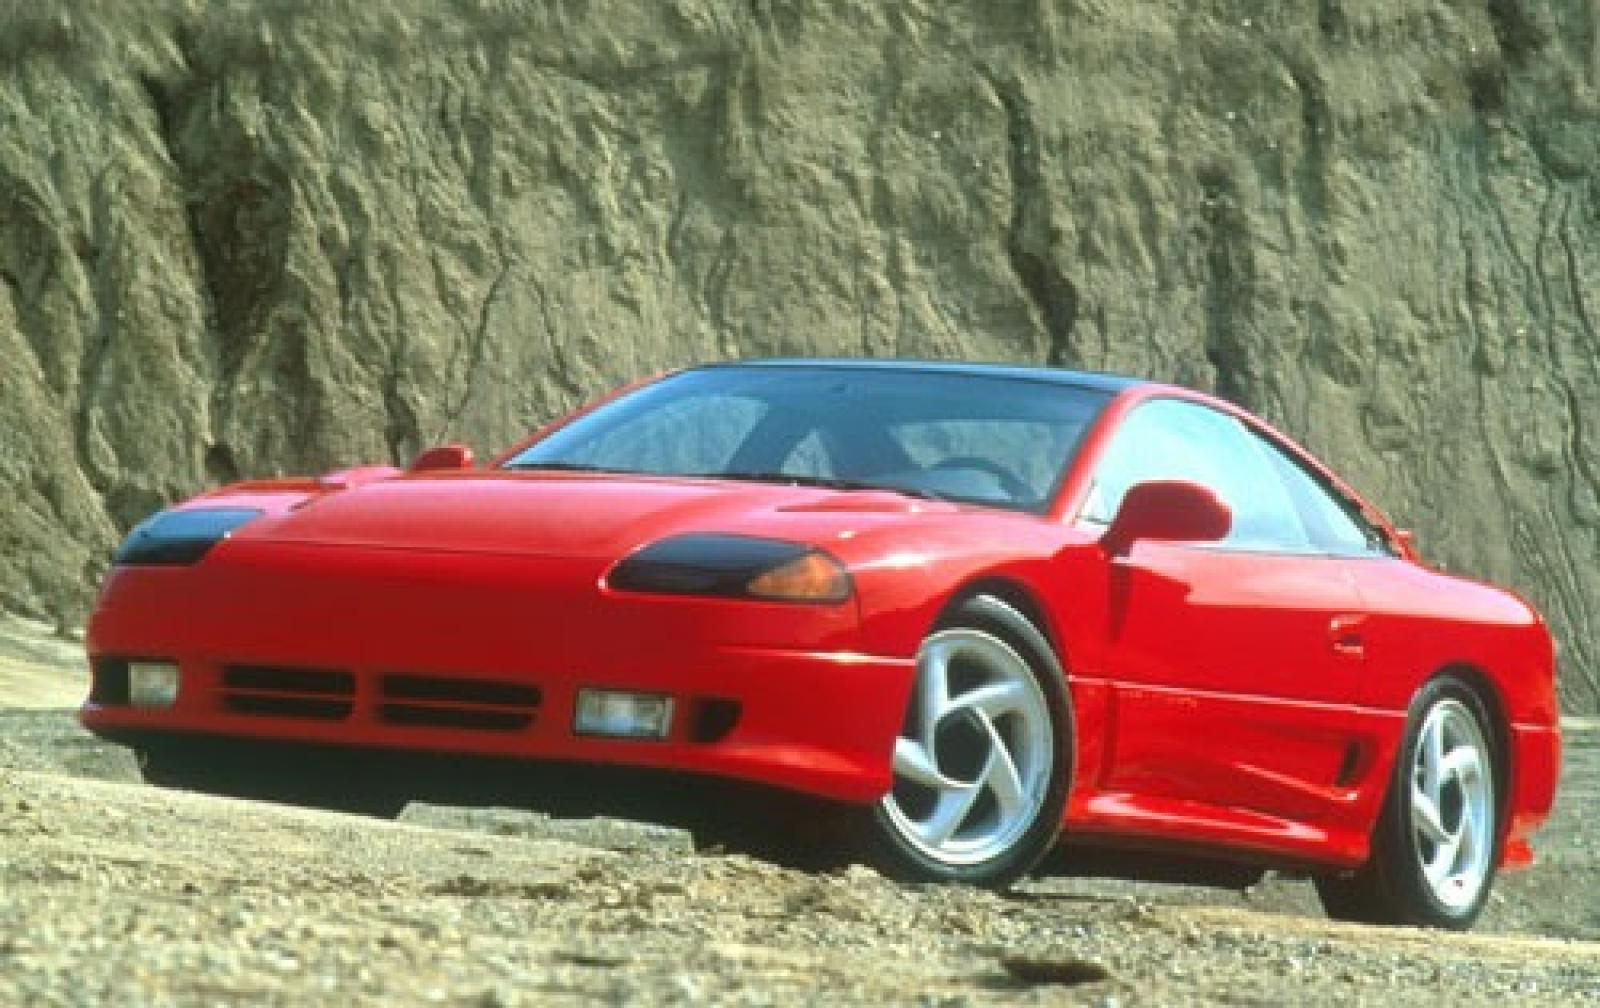 1991 Dodge Stealth Rt Turbo Supercars Net